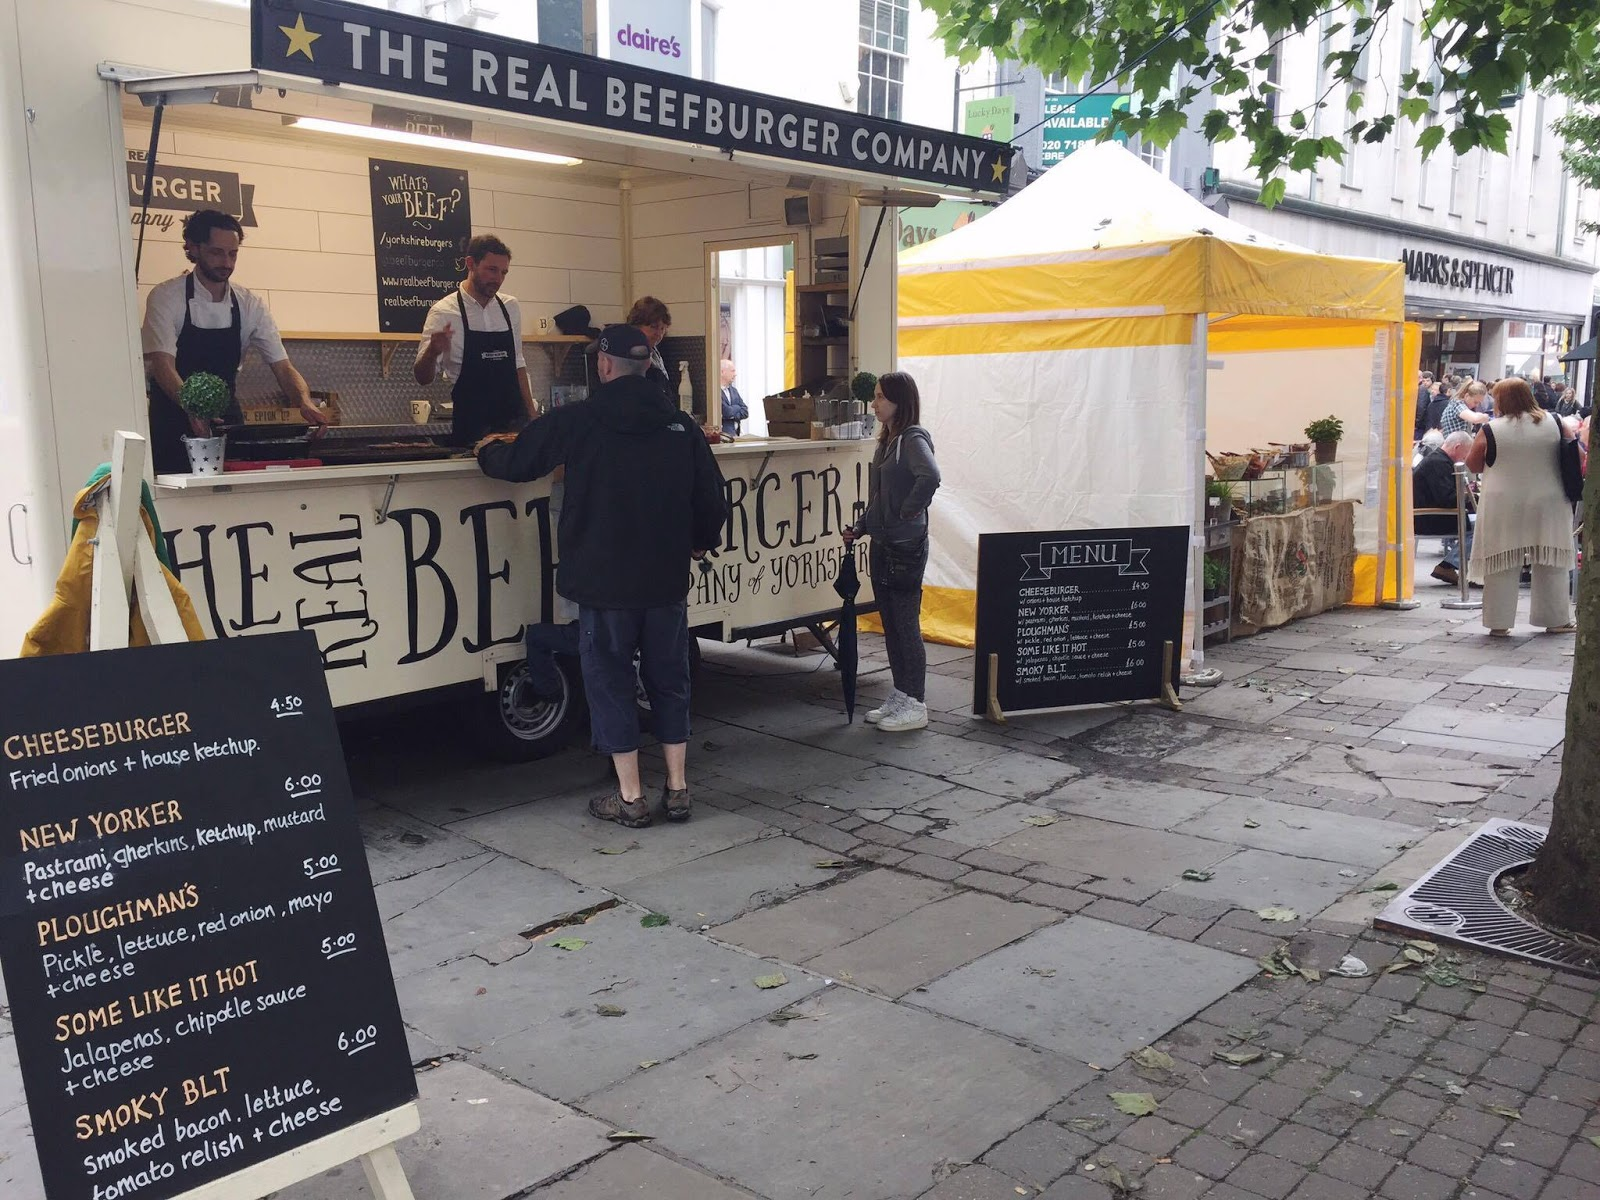 York-Food-Festival-The-Real-Beefburger-Company